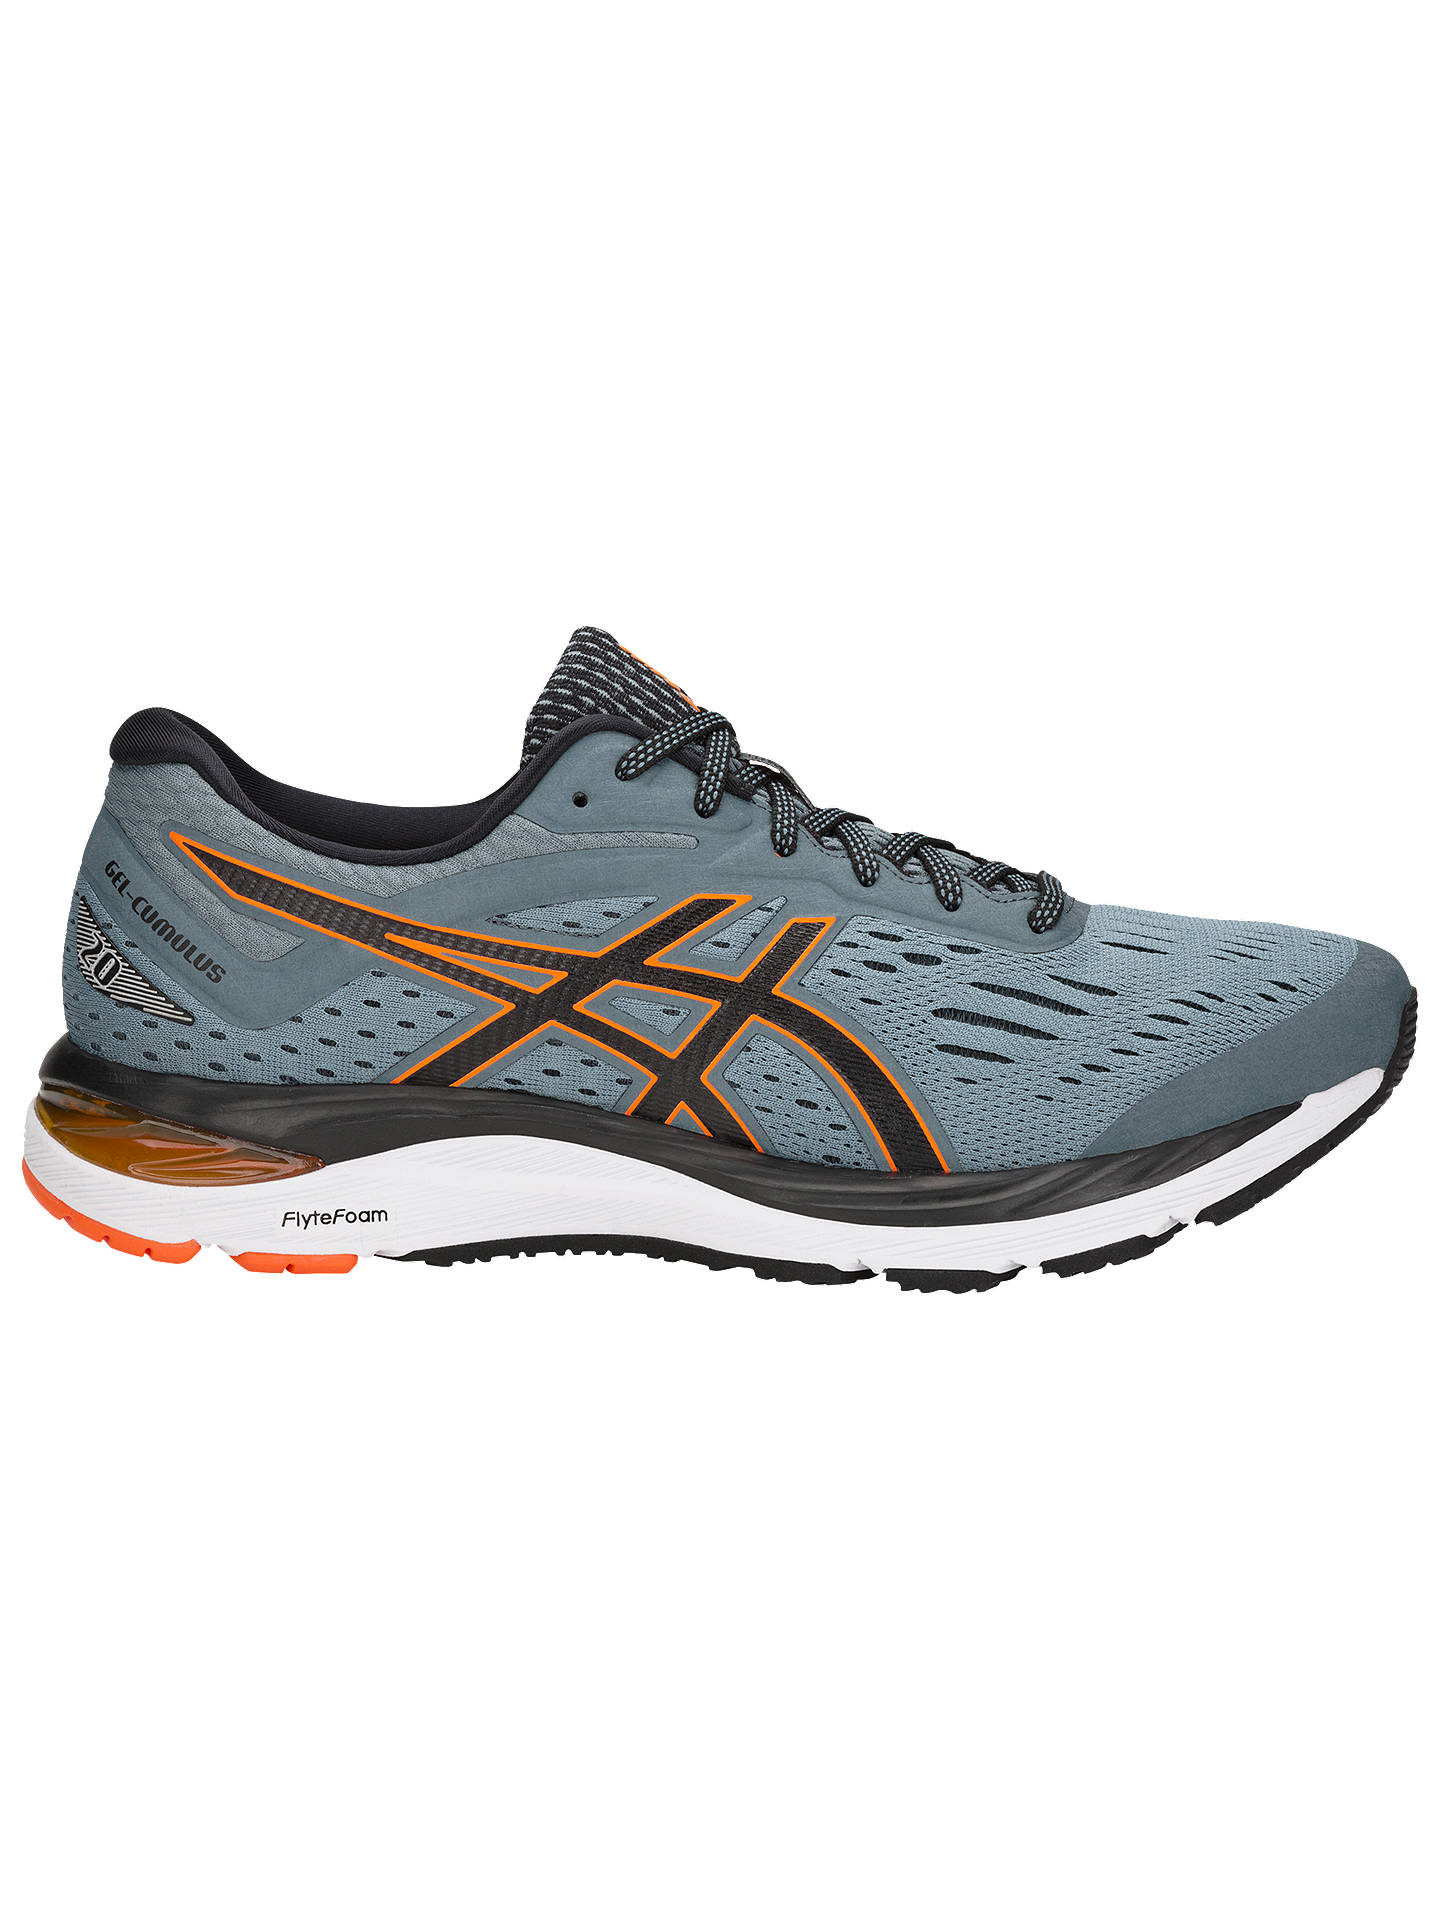 Buy ASICS GEL-CUMULUS 20 Men's Running Shoes, Stone Grey/Black, 8 Online at johnlewis.com